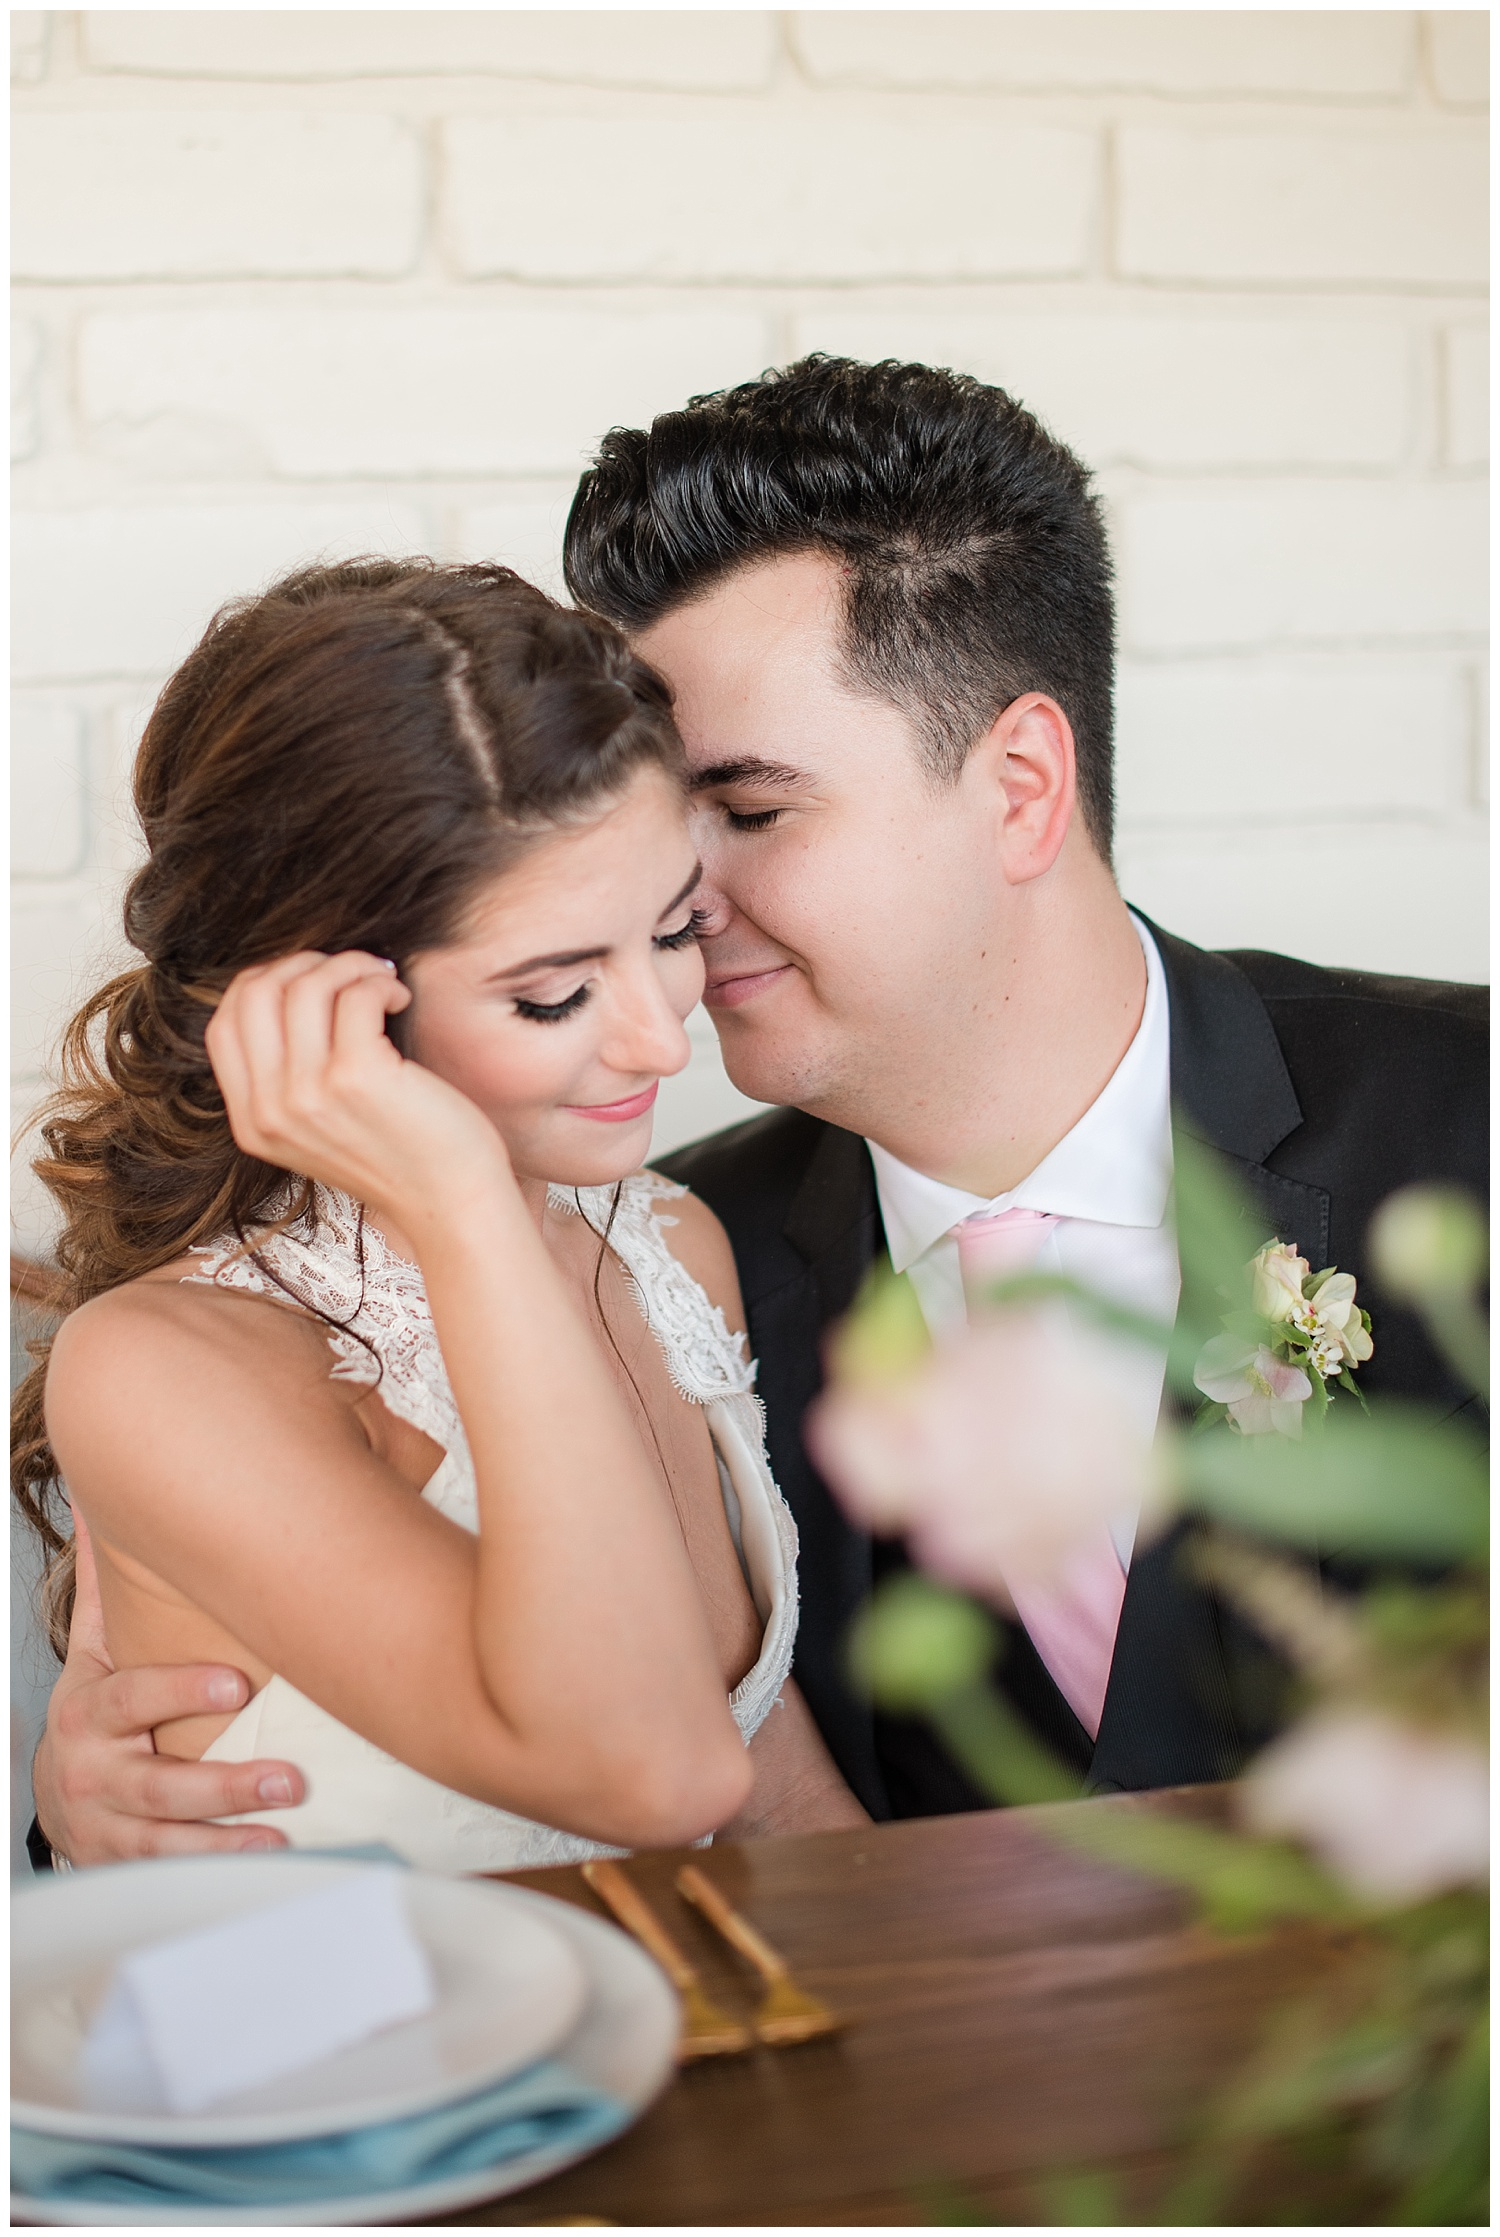 Bride Jessica wearing dress provided by Bella Lily Bridal in Phoenix and nuzzling with groom Slaven, photographed at Gather Estate in Mesa, Arizona.